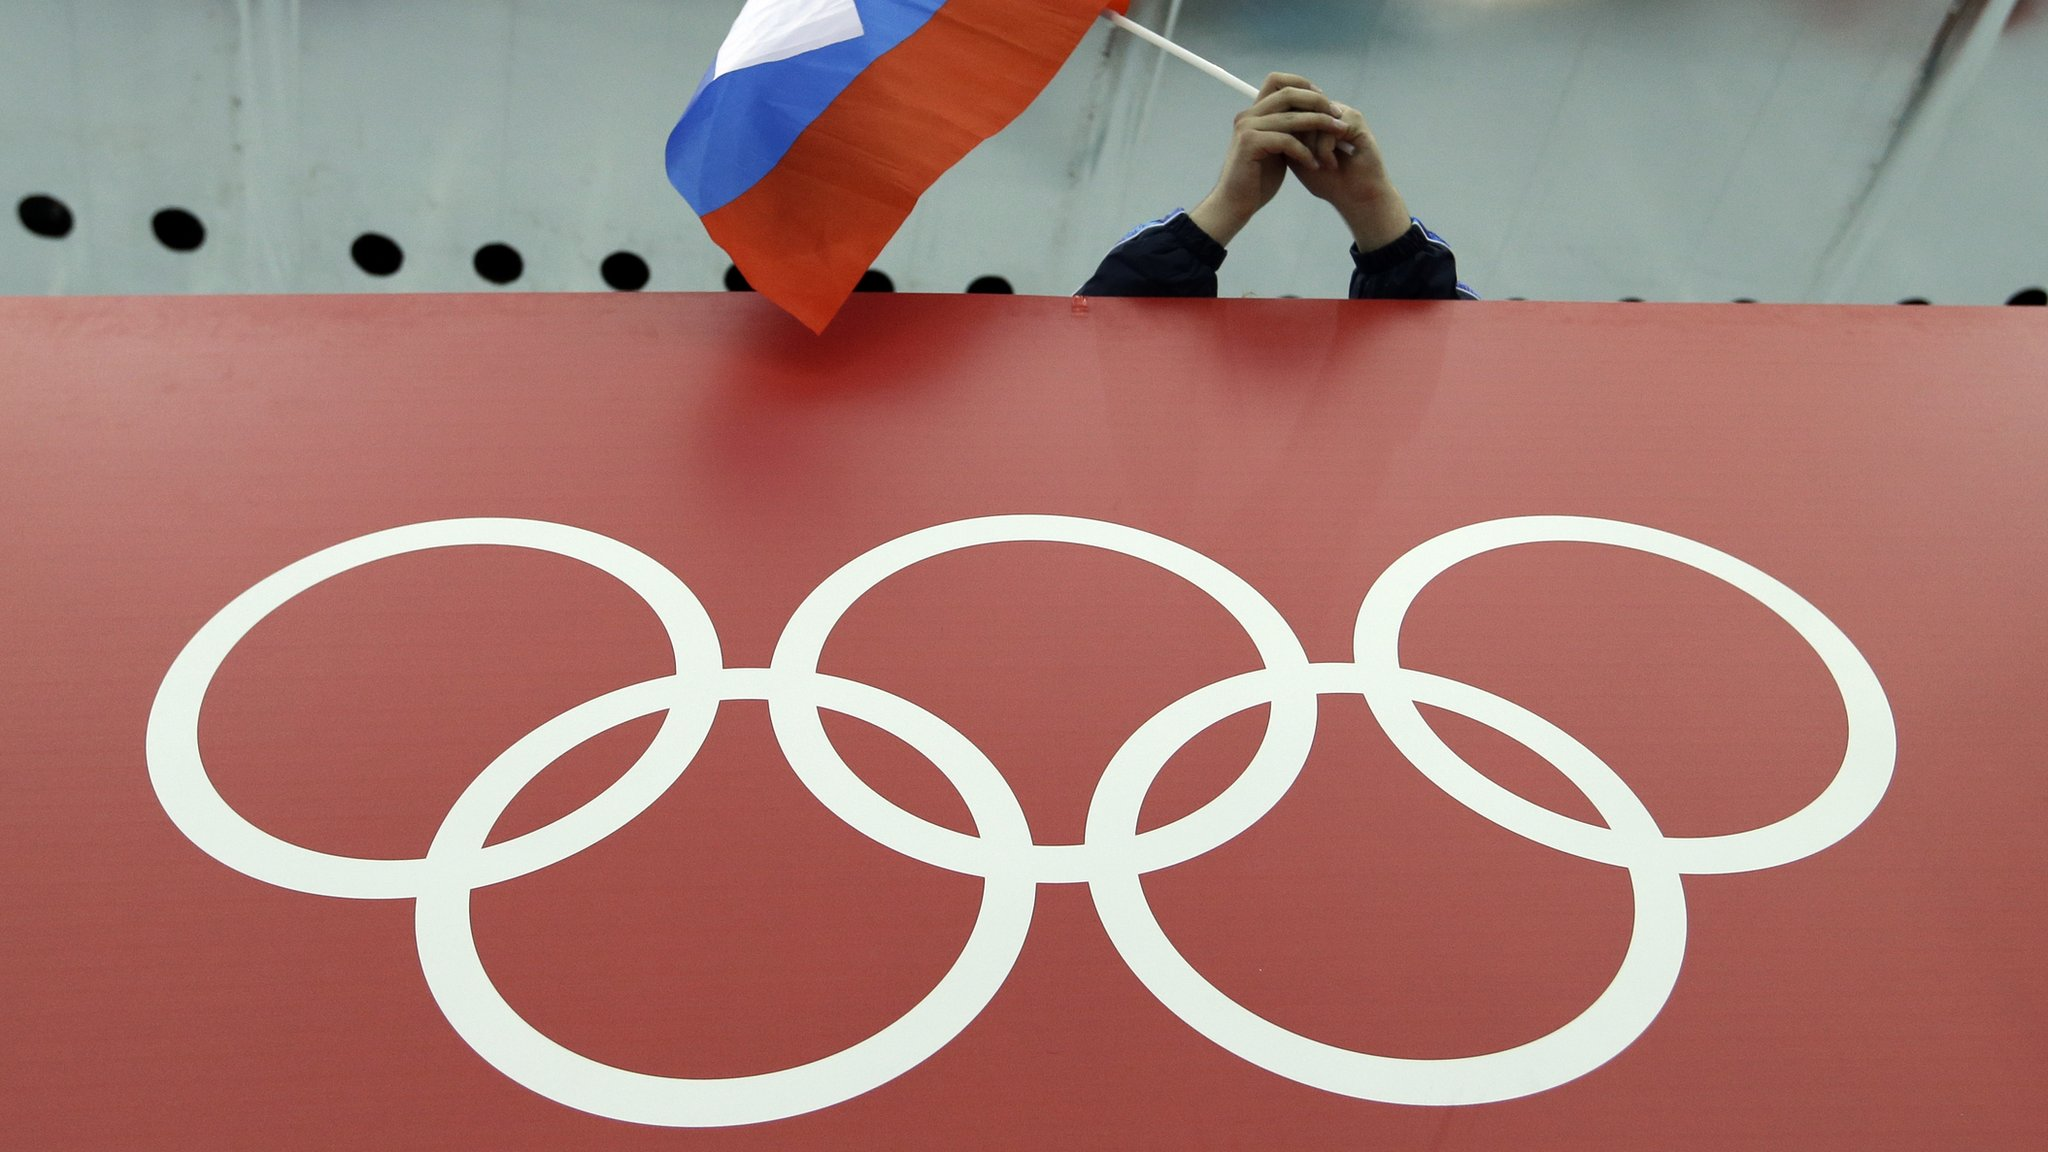 Rio Olympics 2016: Russian athletes are arriving, but how many will compete?